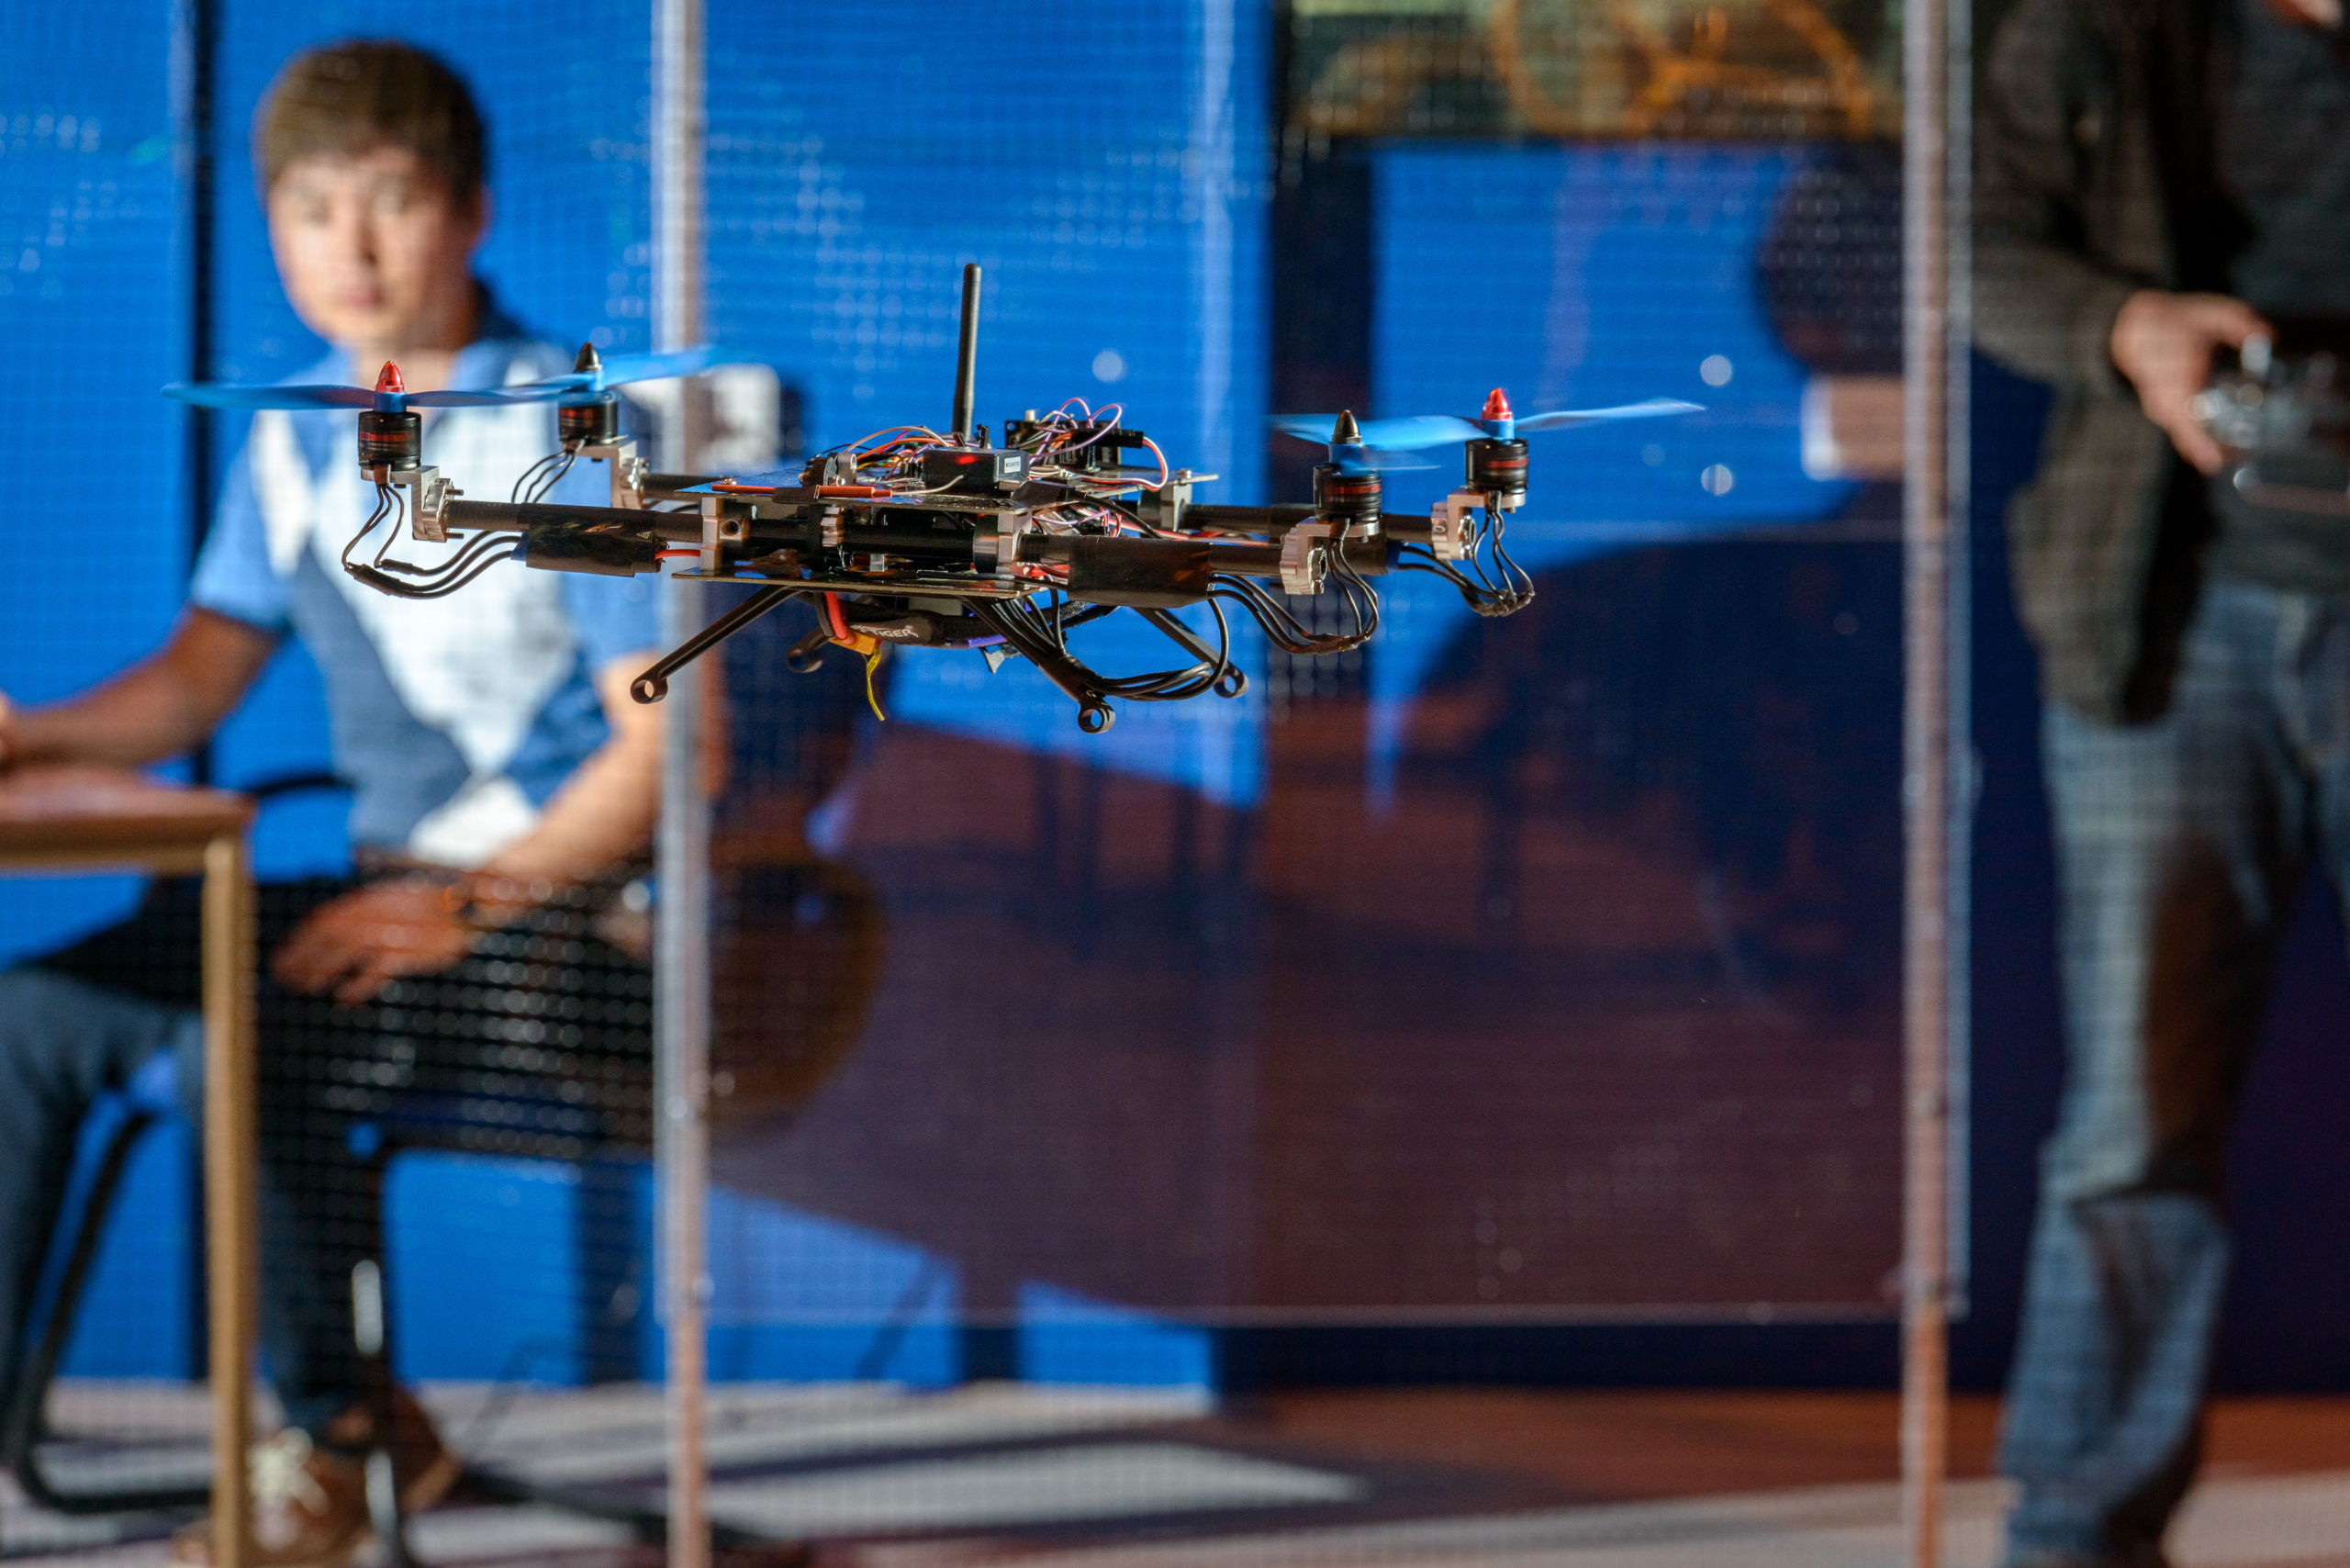 An unmanned aerial vehicle in the laboratory at Cranfield University